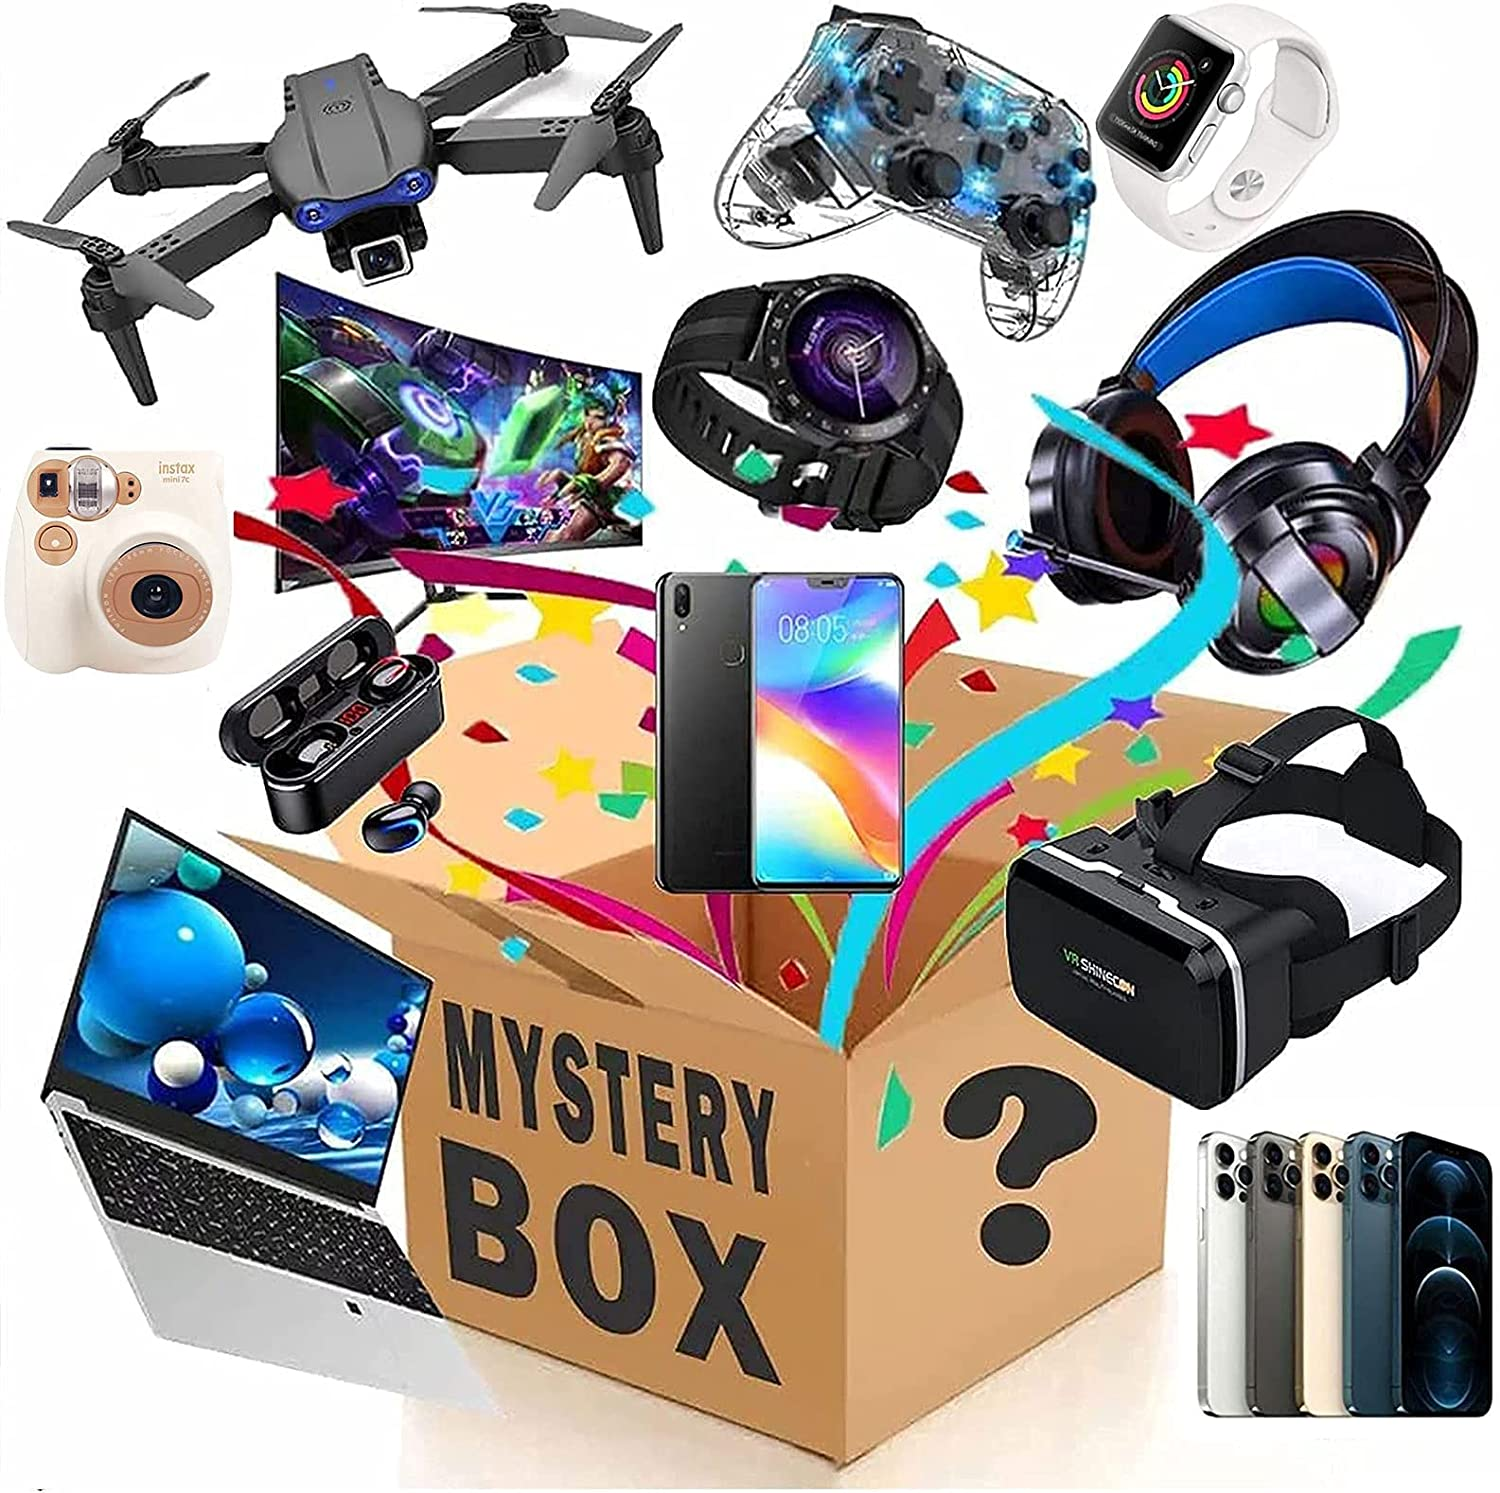 Mystery Items for Electronic Gifts famous Nice Makes Surprise Max 52% OFF